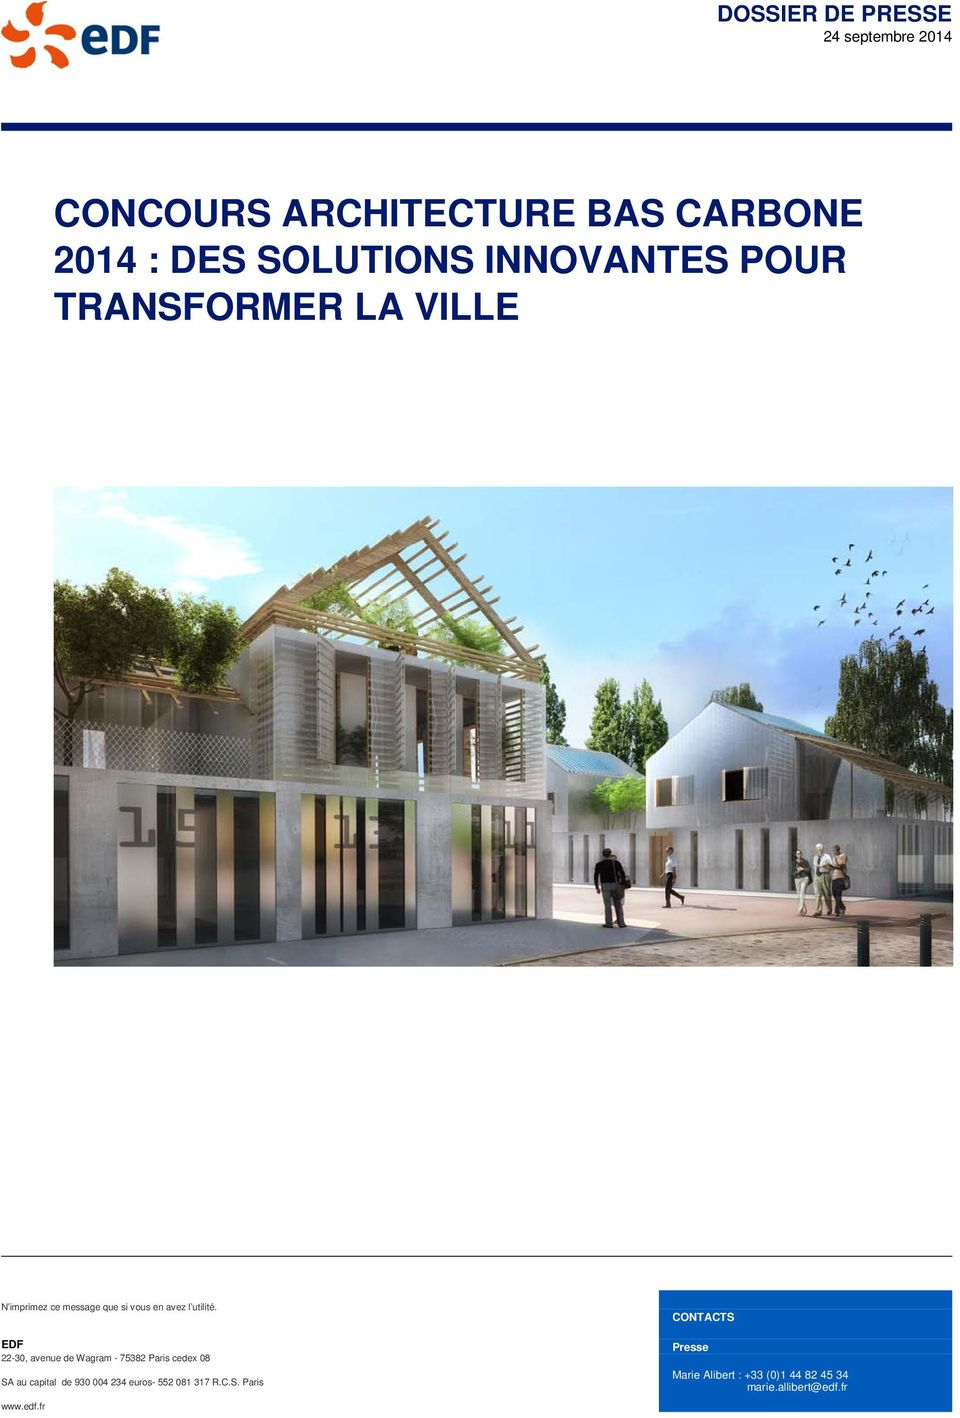 EDF 22-30, avenue de Wagram - 75382 Paris cedex 08 SA au capital de 930 004 234 euros-